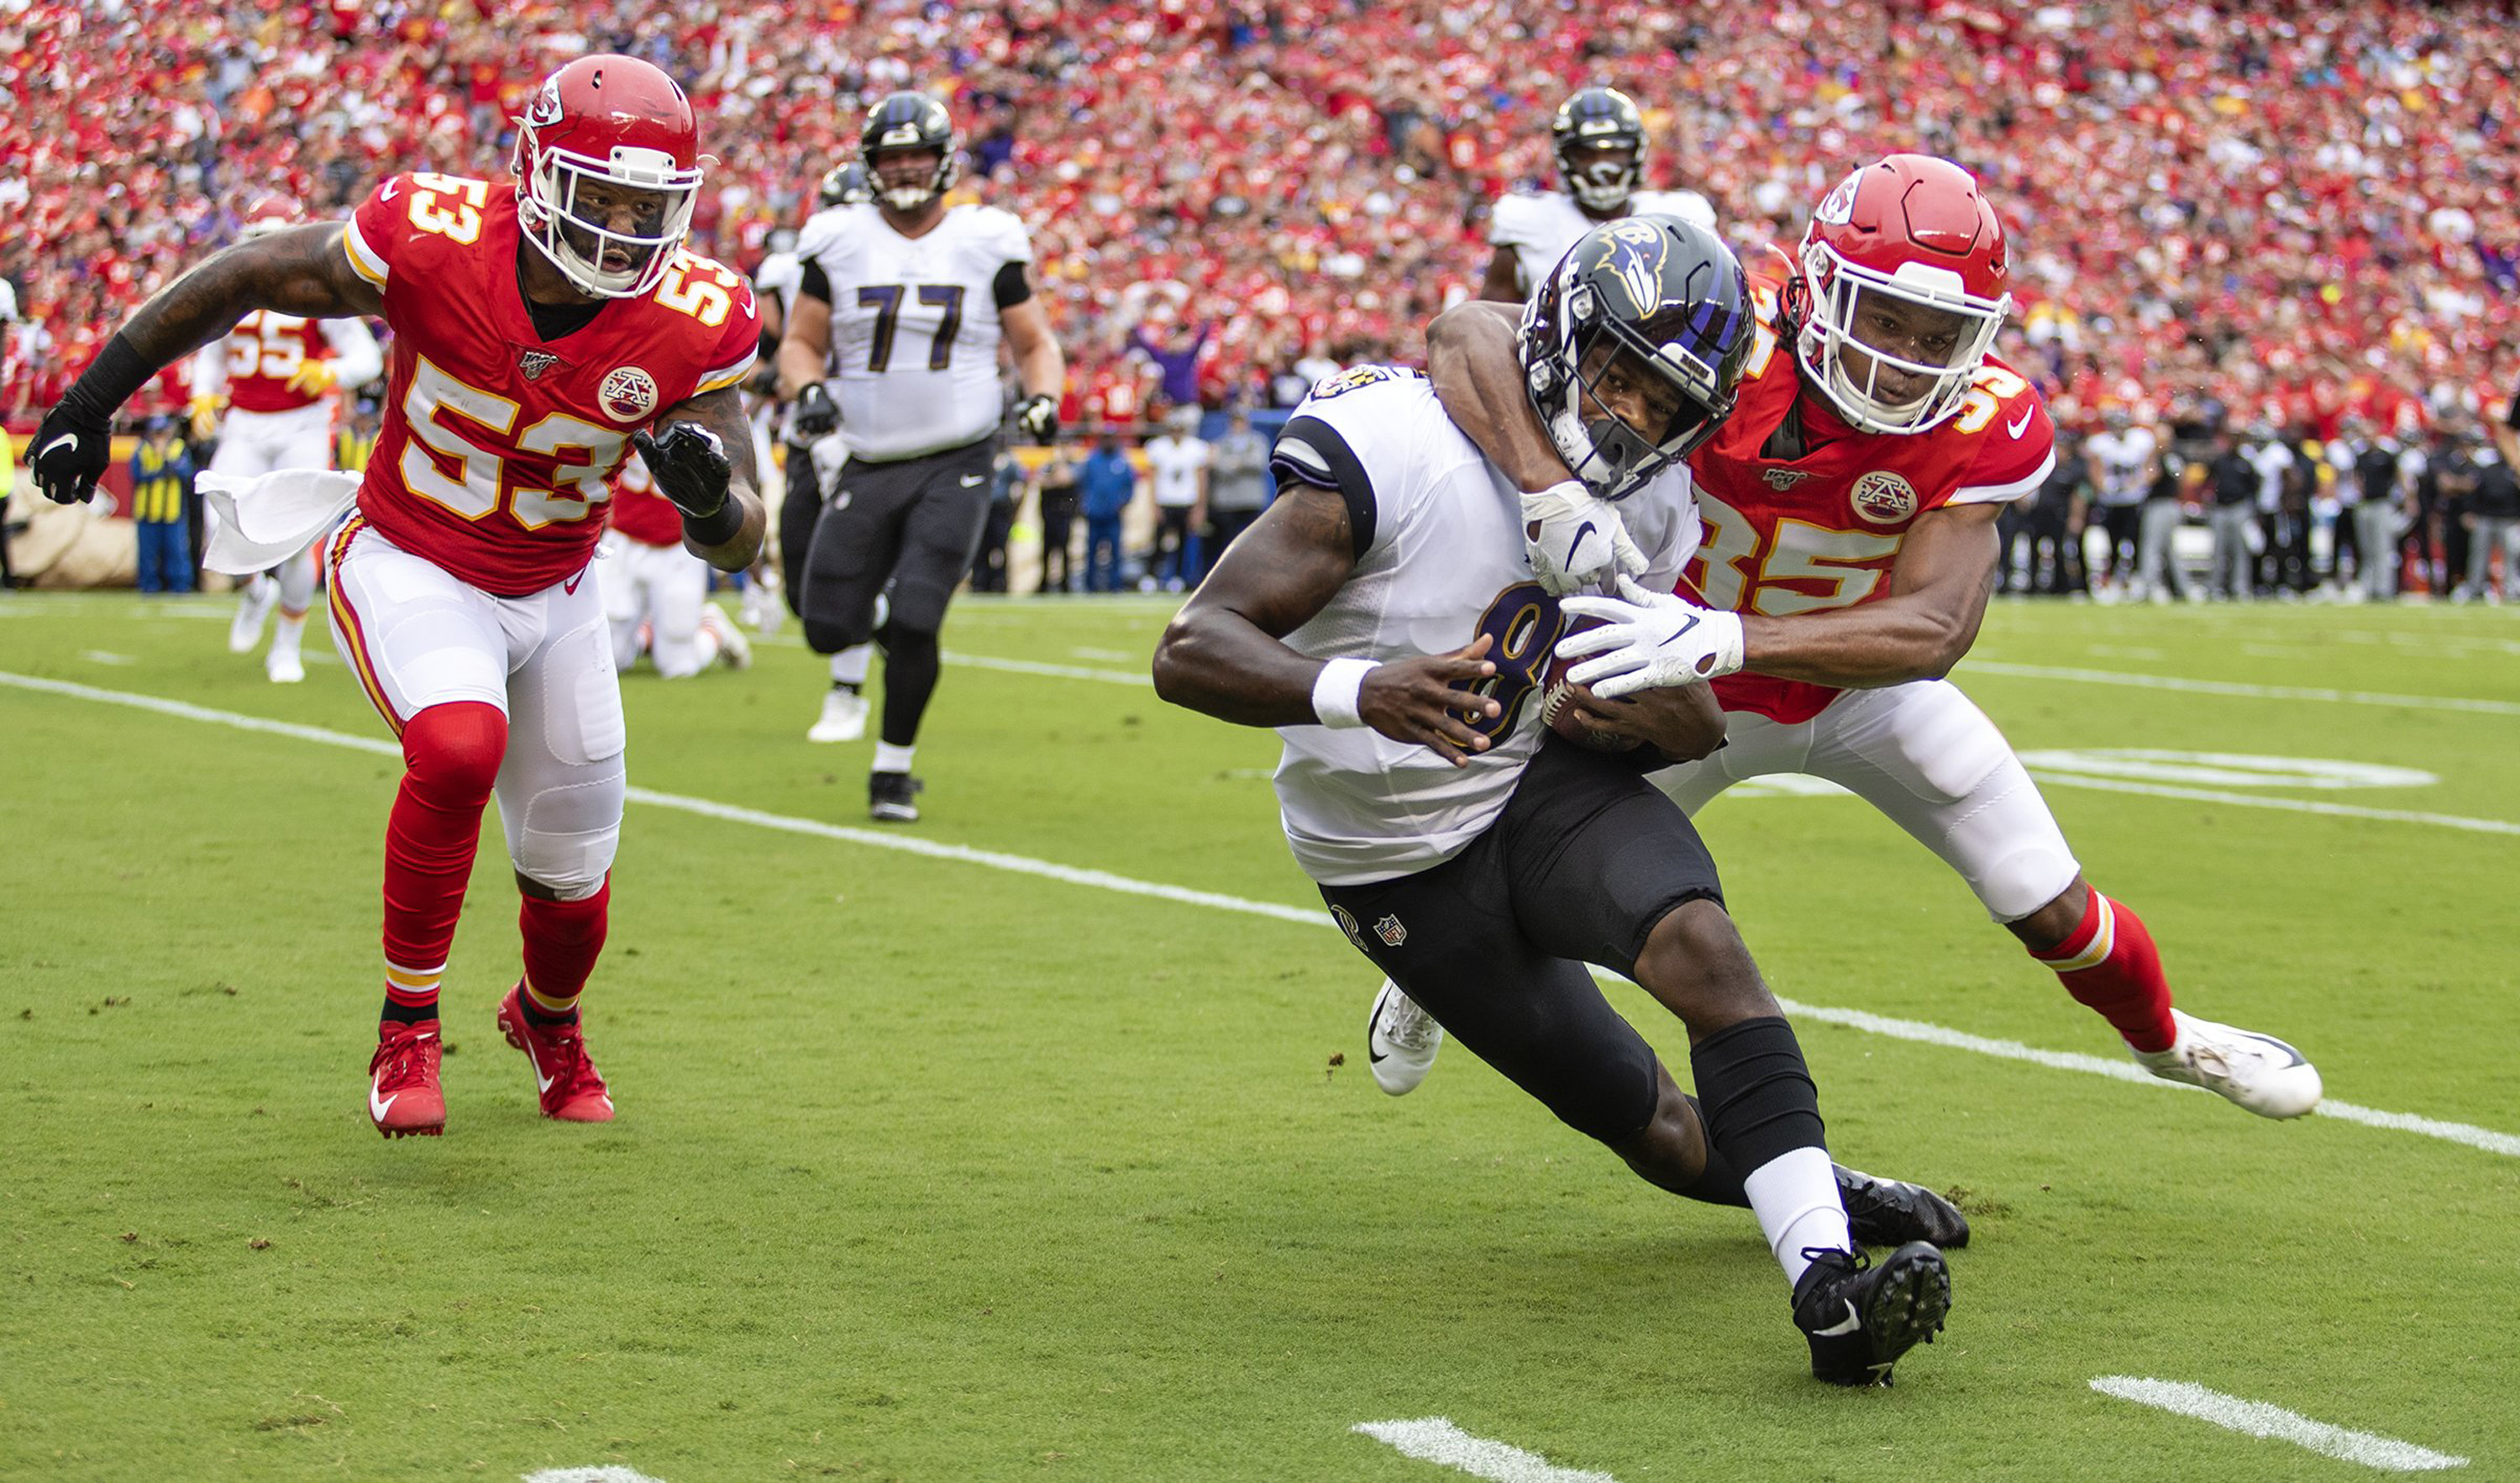 Patrick Mahomes stars again as Chiefs beat the Ravens in long-awaited home opener